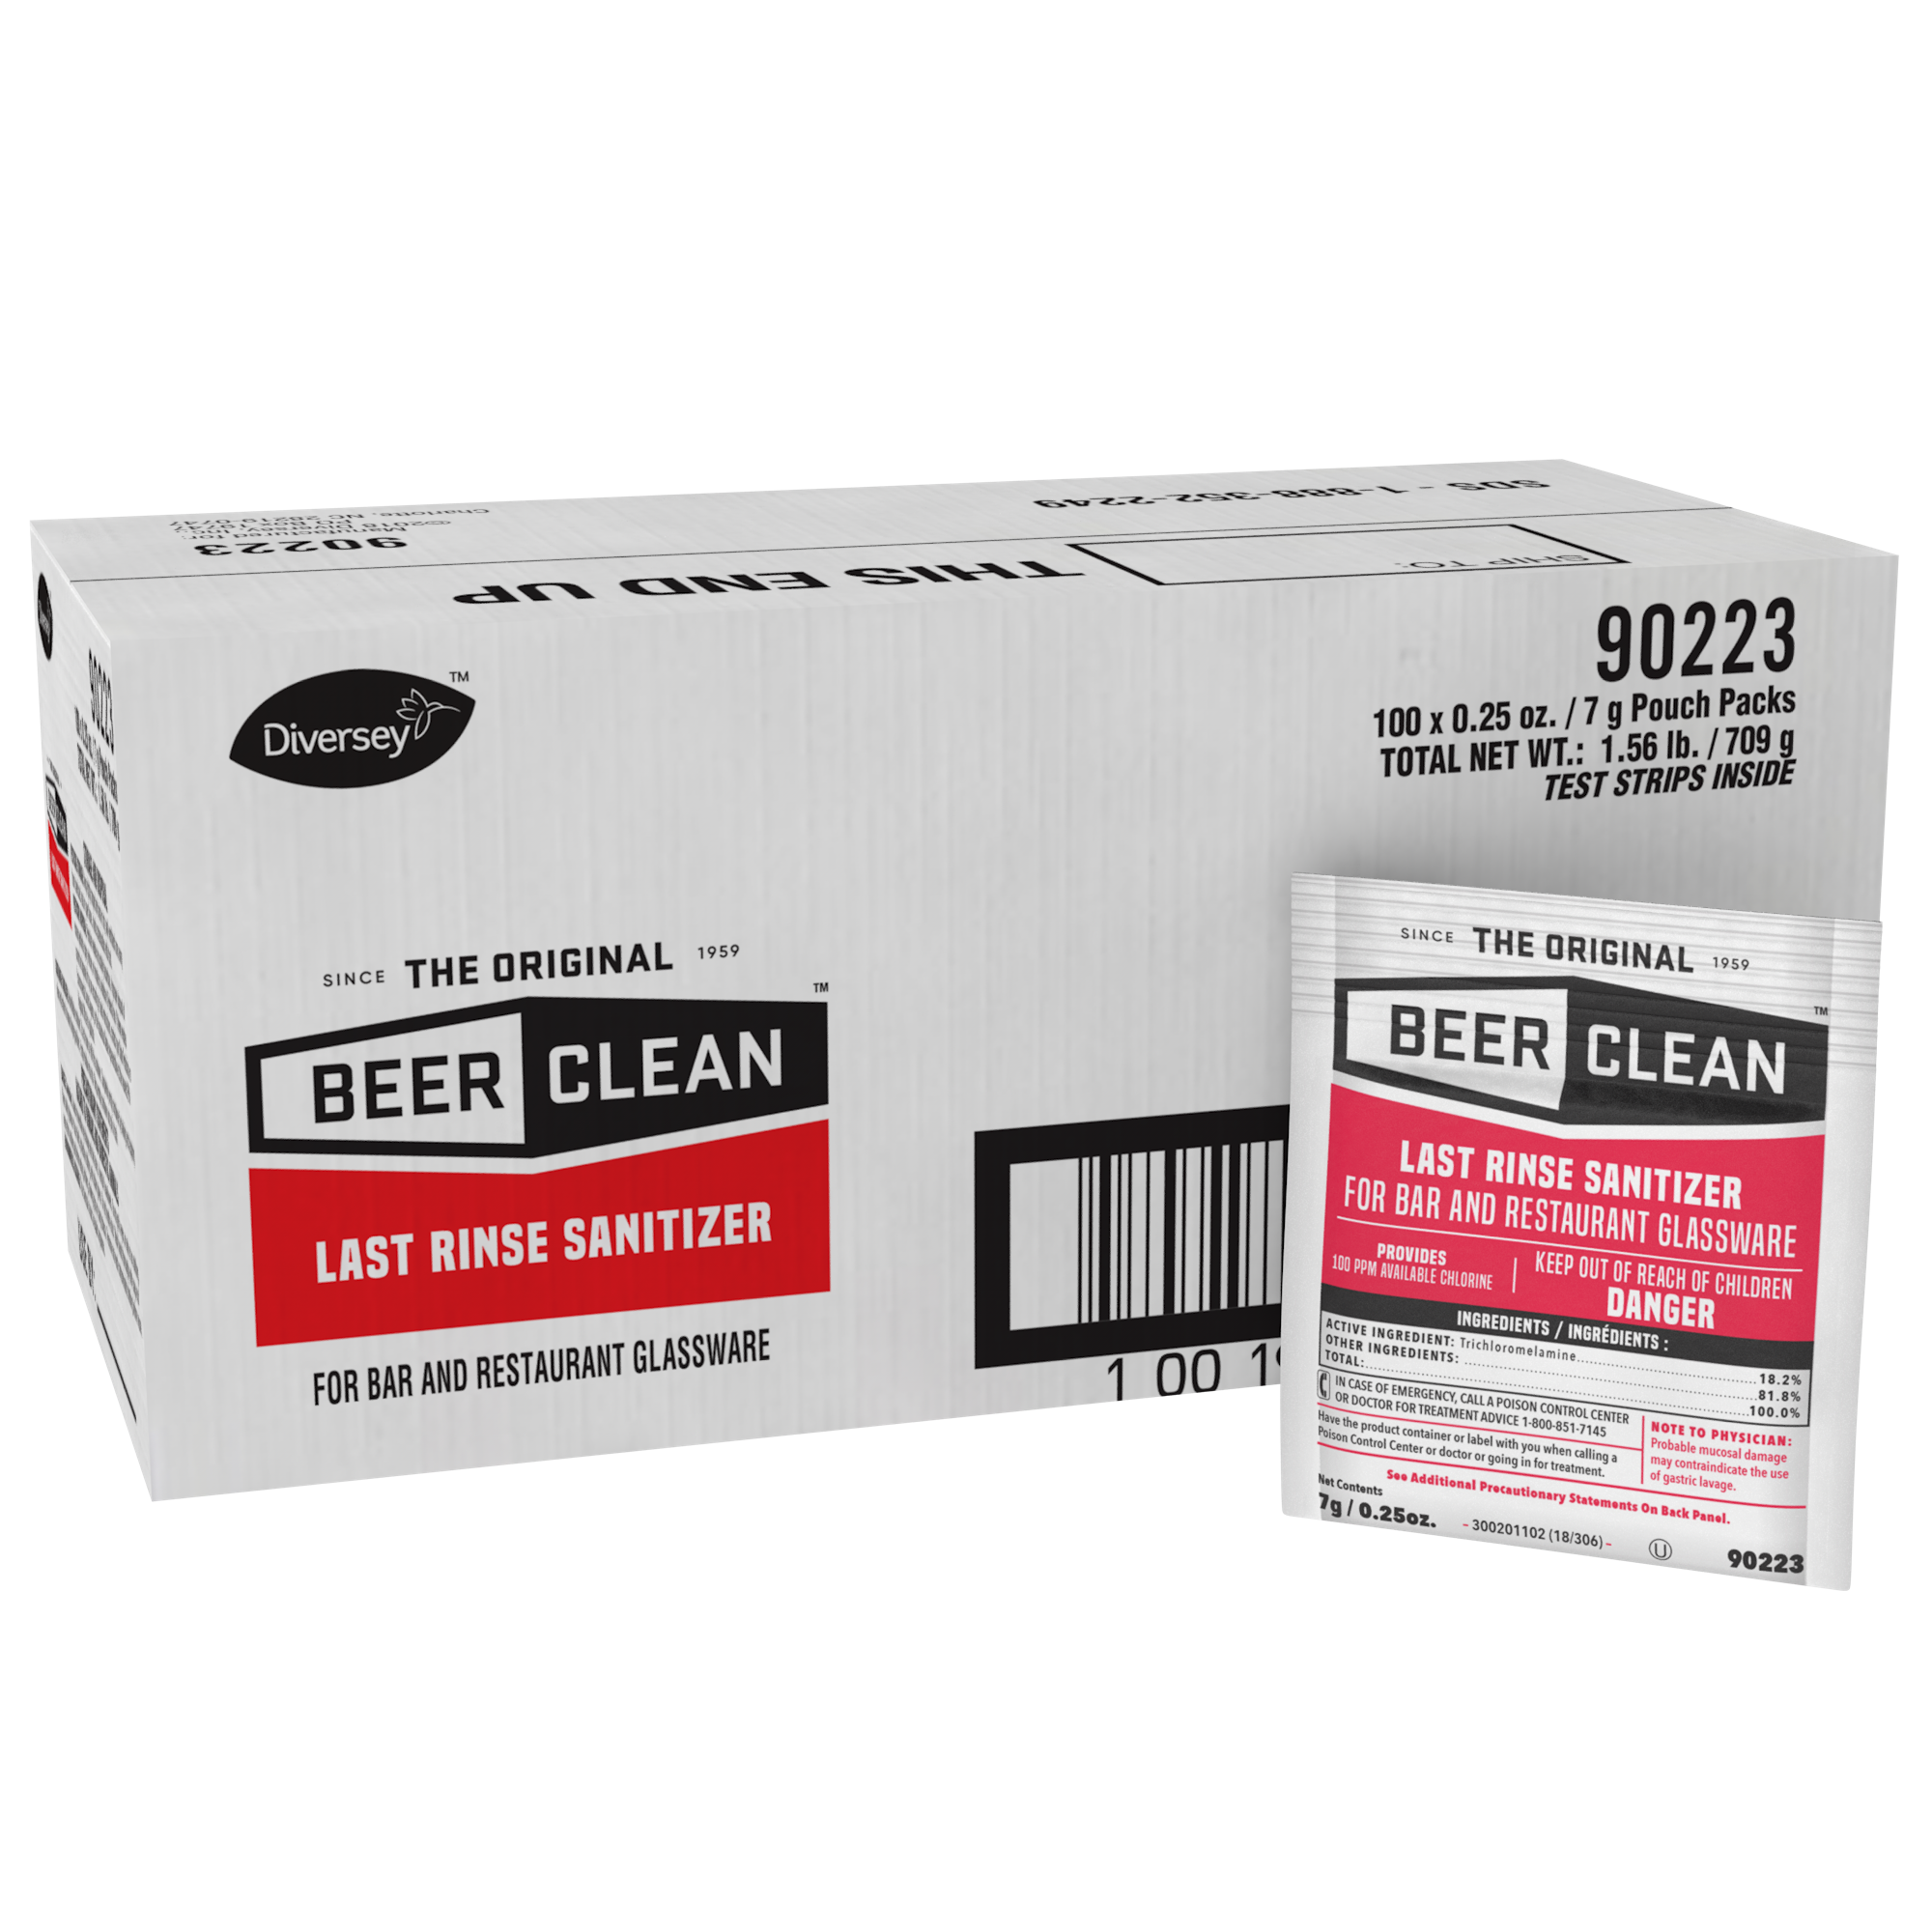 Beer Clean Last Rinse Sanitizer .25 oz. powder packet 90223